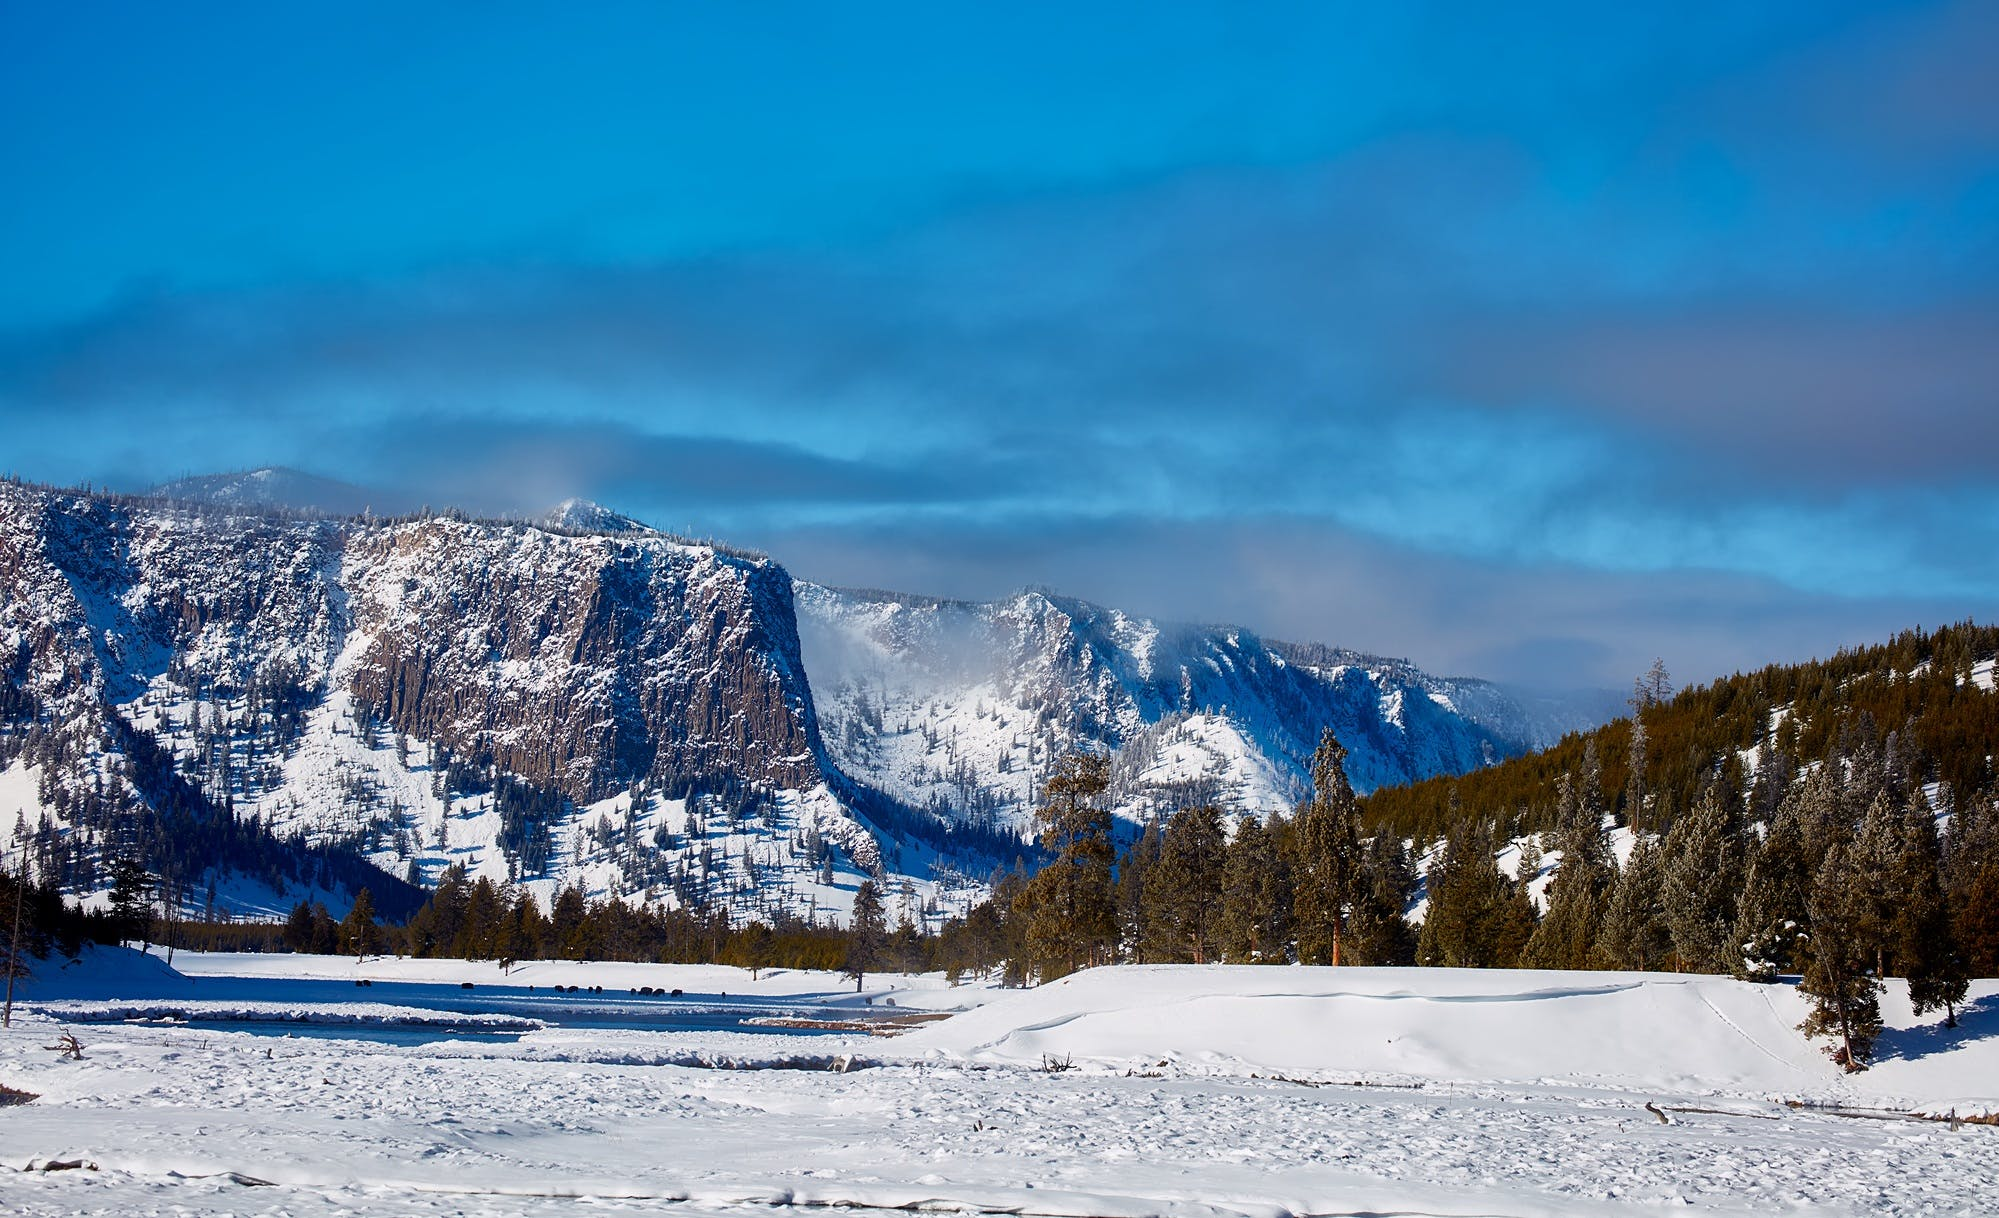 Photography of Mountains Near Woods during Winter